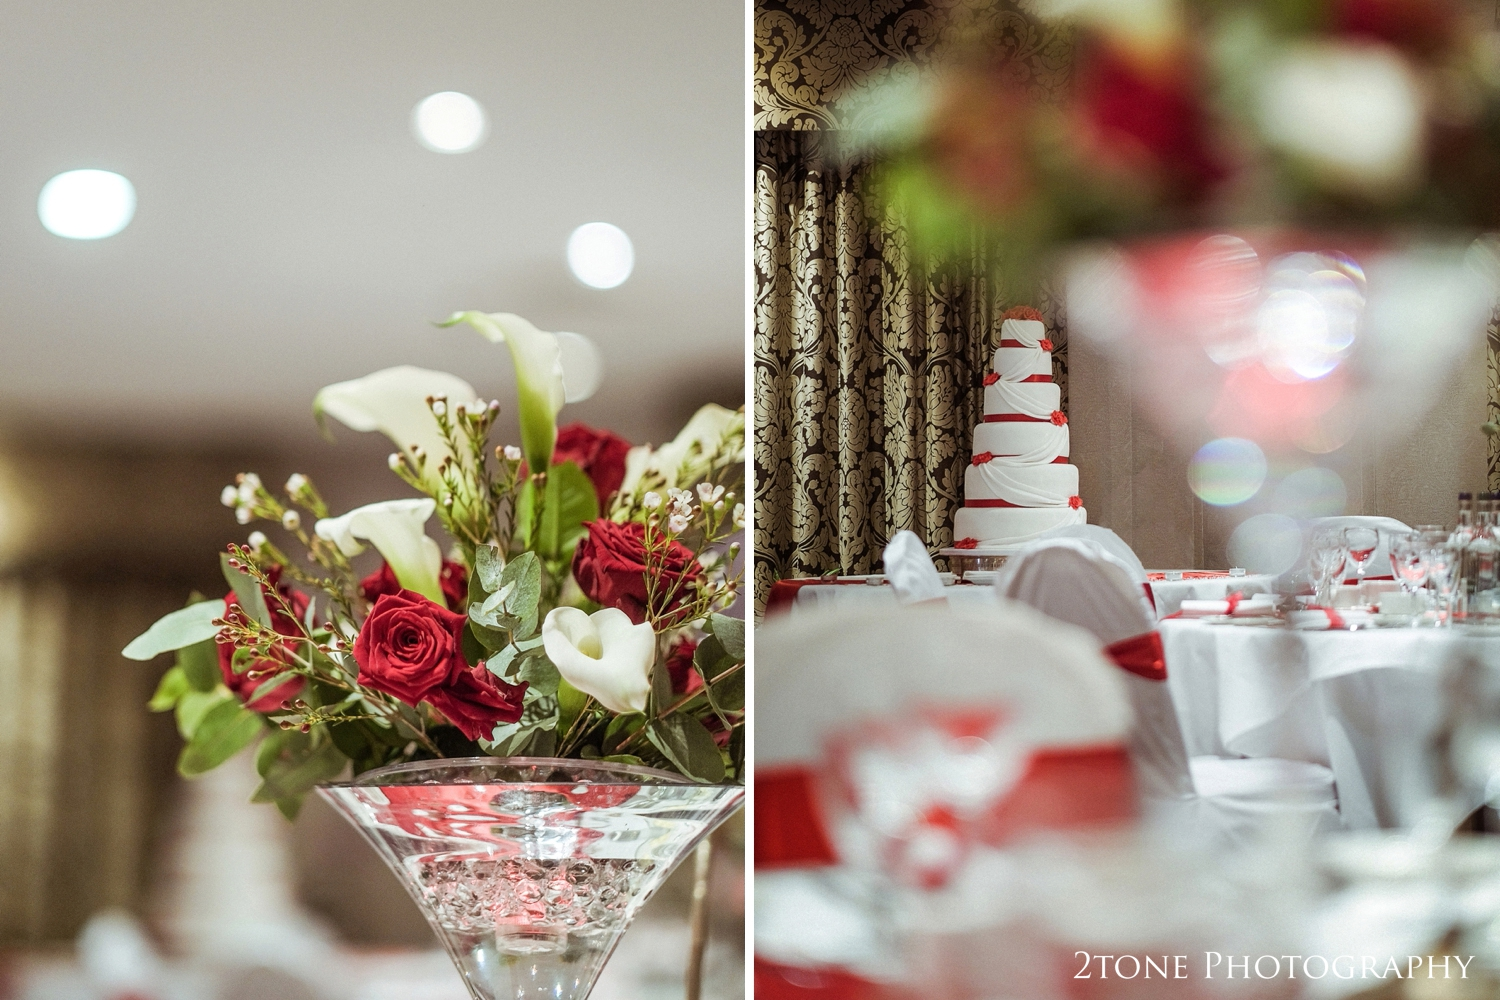 Hannah and Paul chose a whopping six tier wedding cake trimmed with red ribbon, red sugar paste flowers and a beautiful iced white ribbon winding it's way down. It was elegant and sophisticated and smelled incredible.